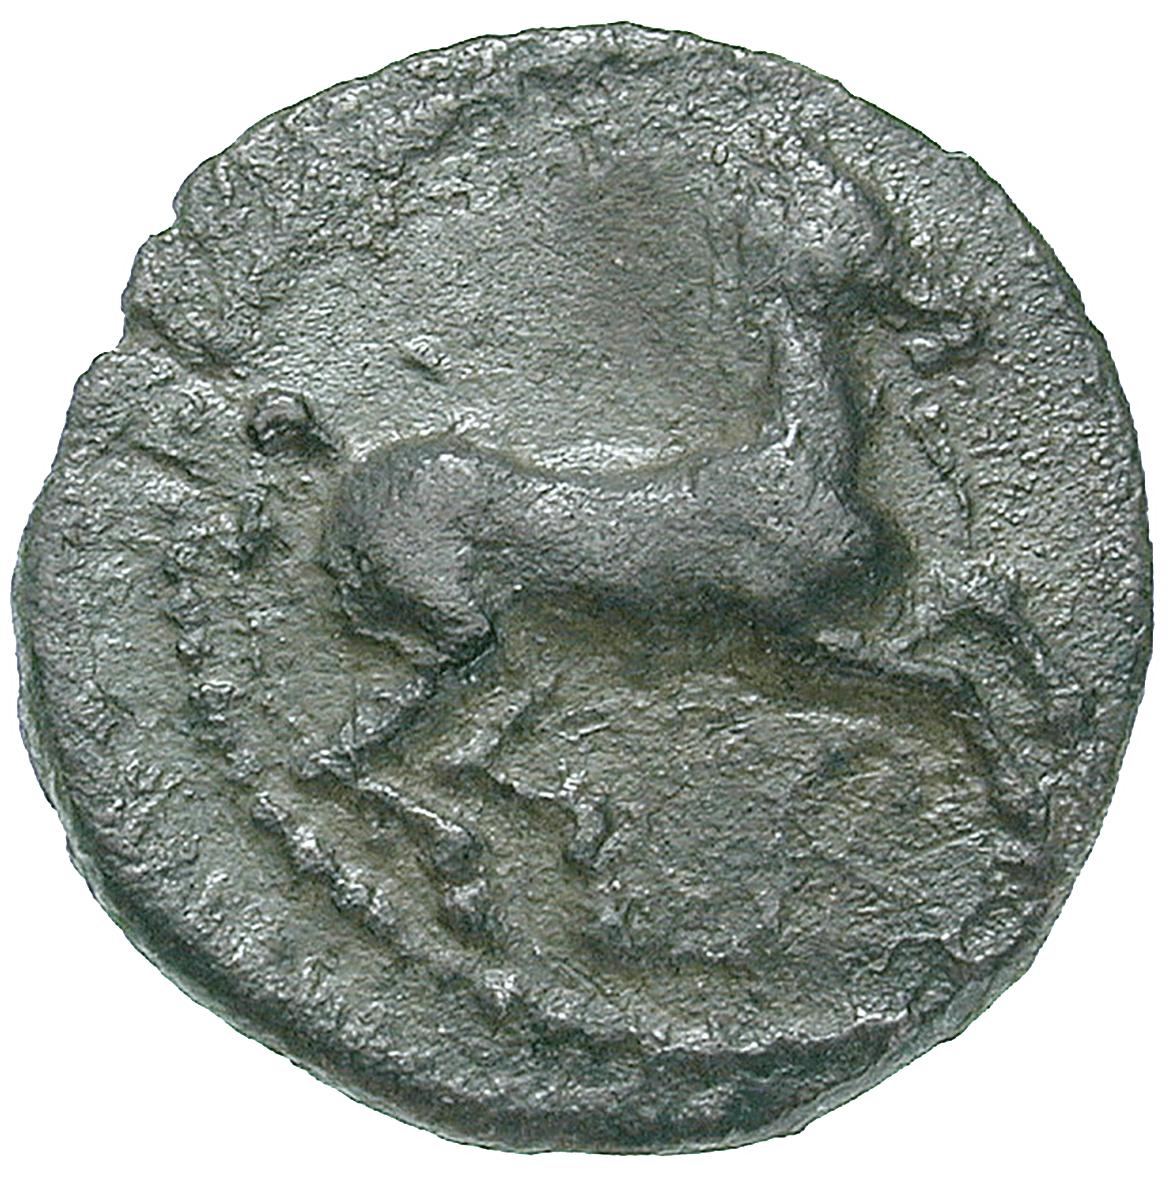 Sizilien, Sikeler, Tauromenion, Litra (obverse)